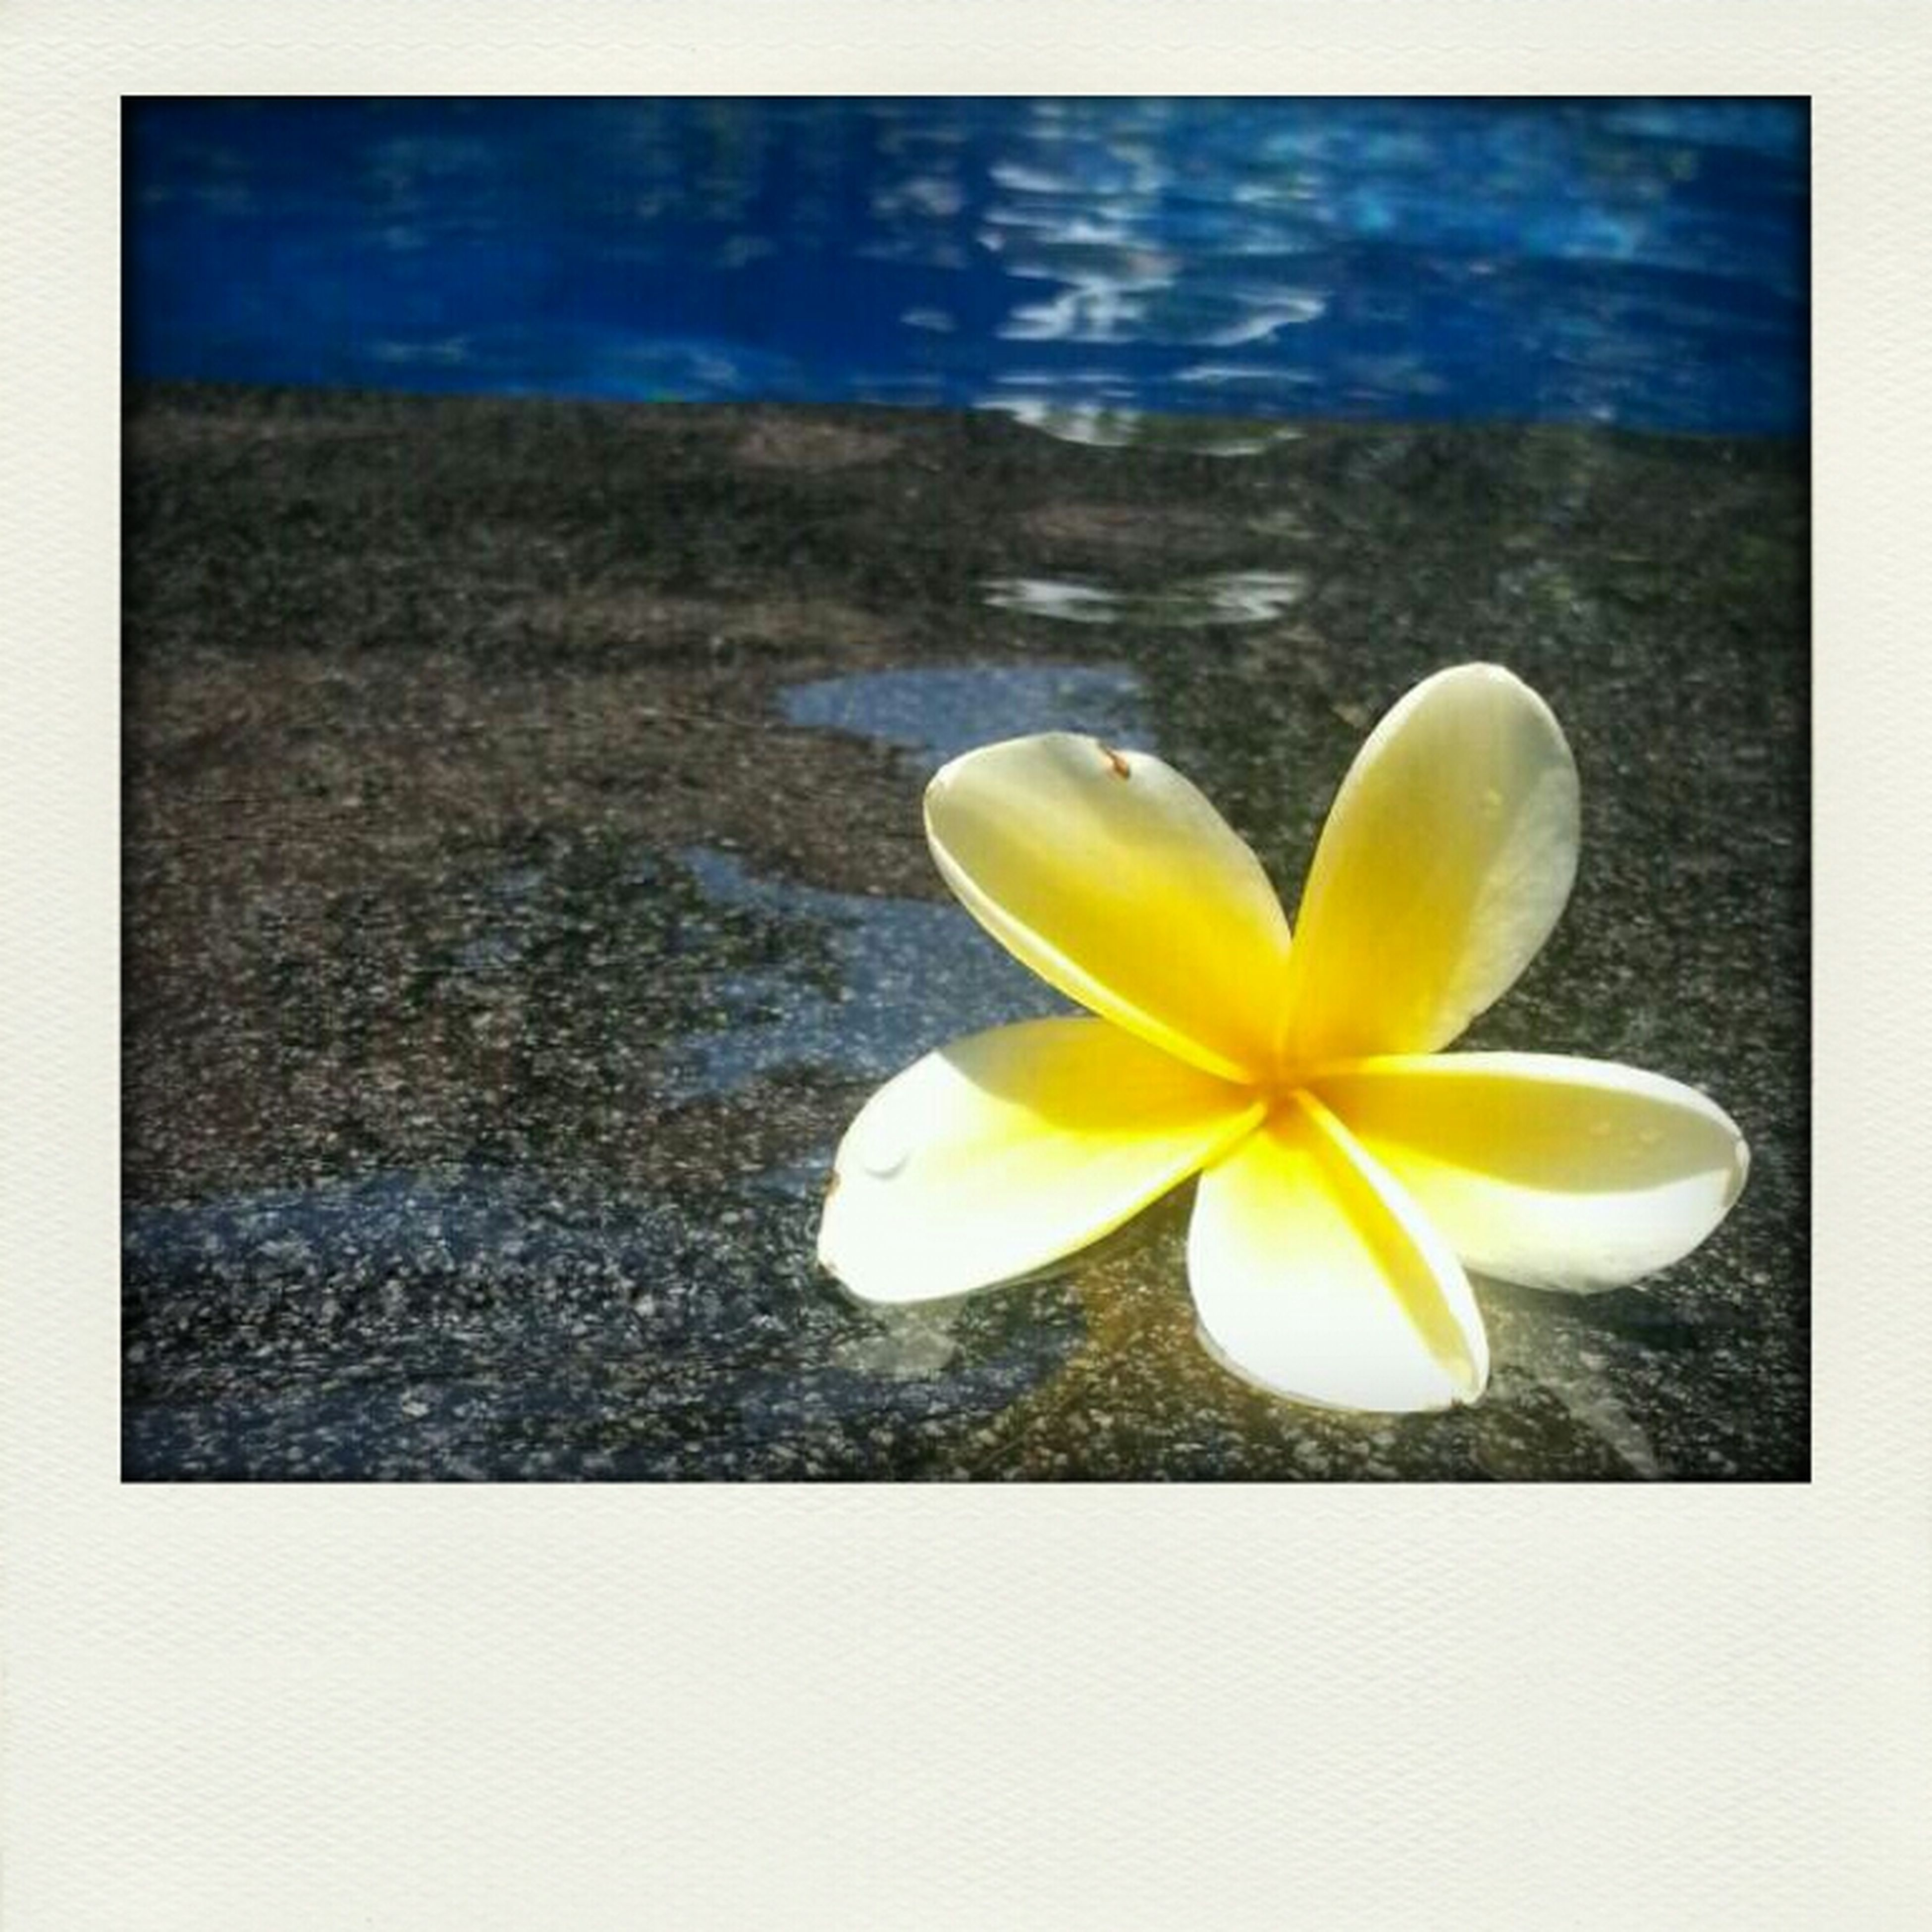 flower, petal, flower head, fragility, freshness, yellow, beauty in nature, nature, single flower, pollen, close-up, high angle view, water, blooming, growth, white color, plant, stamen, in bloom, water lily